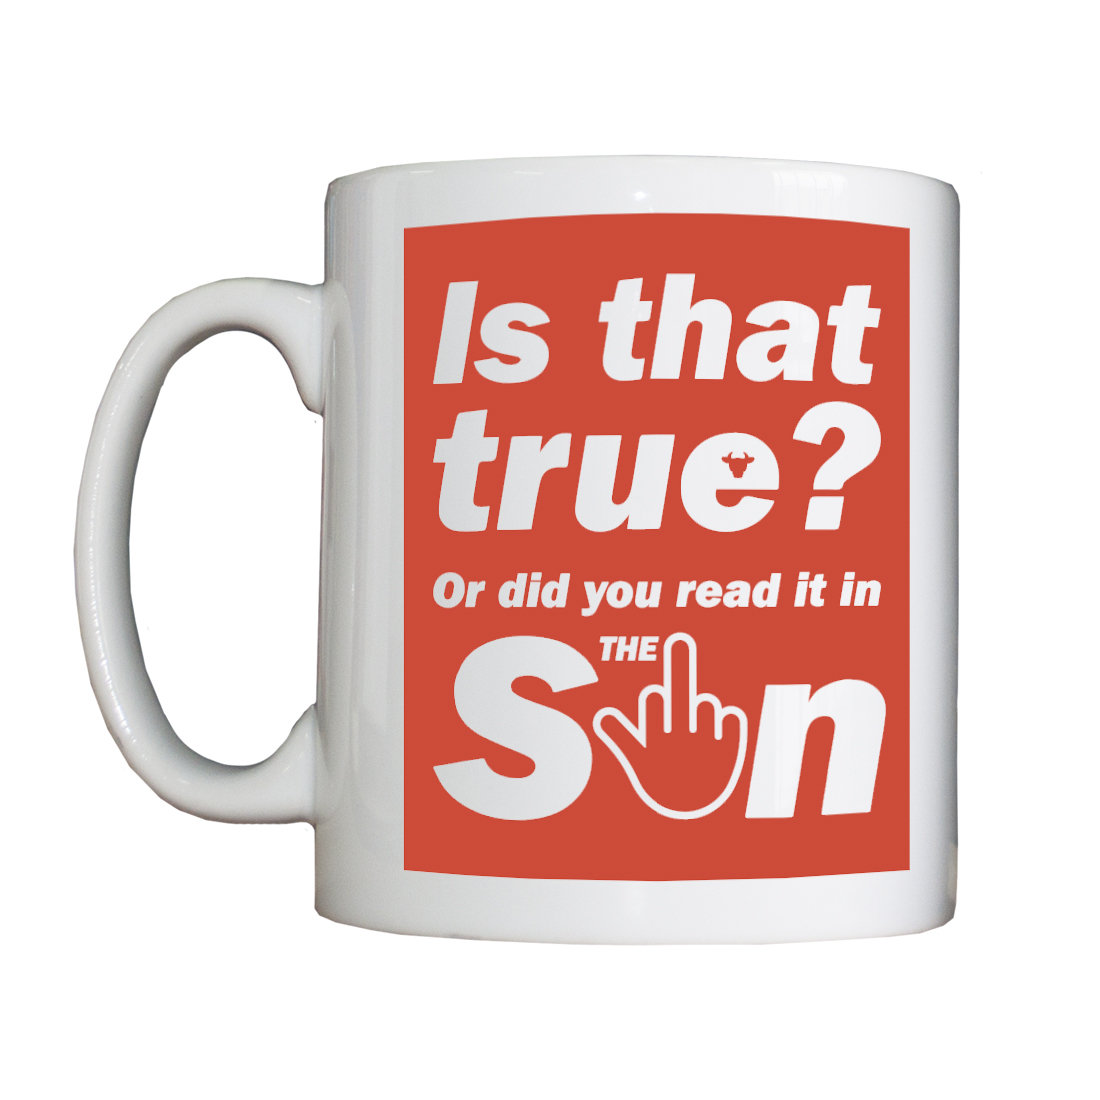 Fake News Mug FakeNewsMug